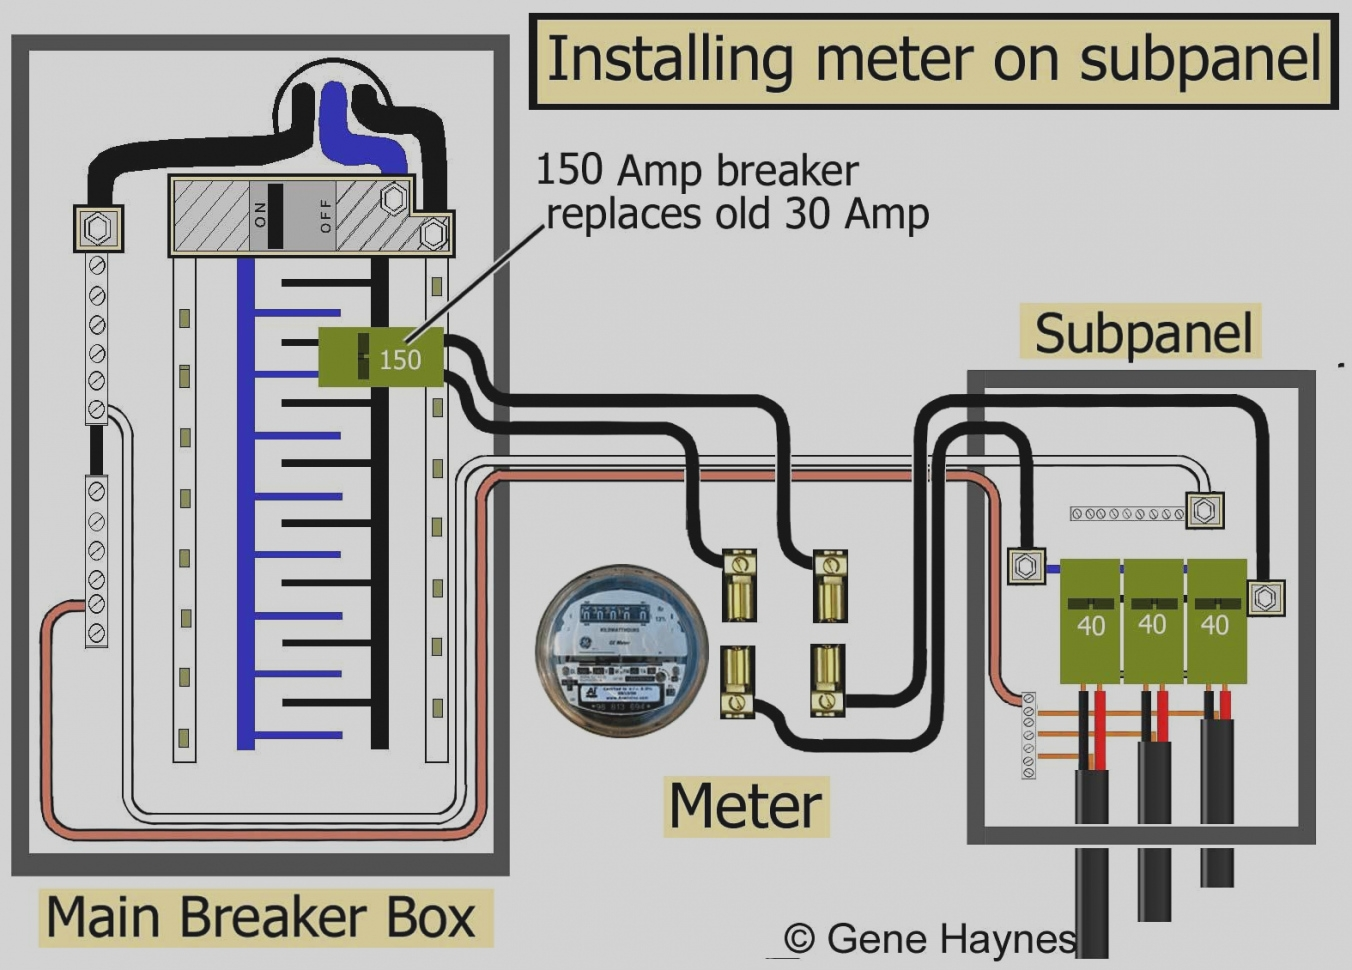 electric meter box wiring diagram | free wiring diagram electric meter wiring diagram